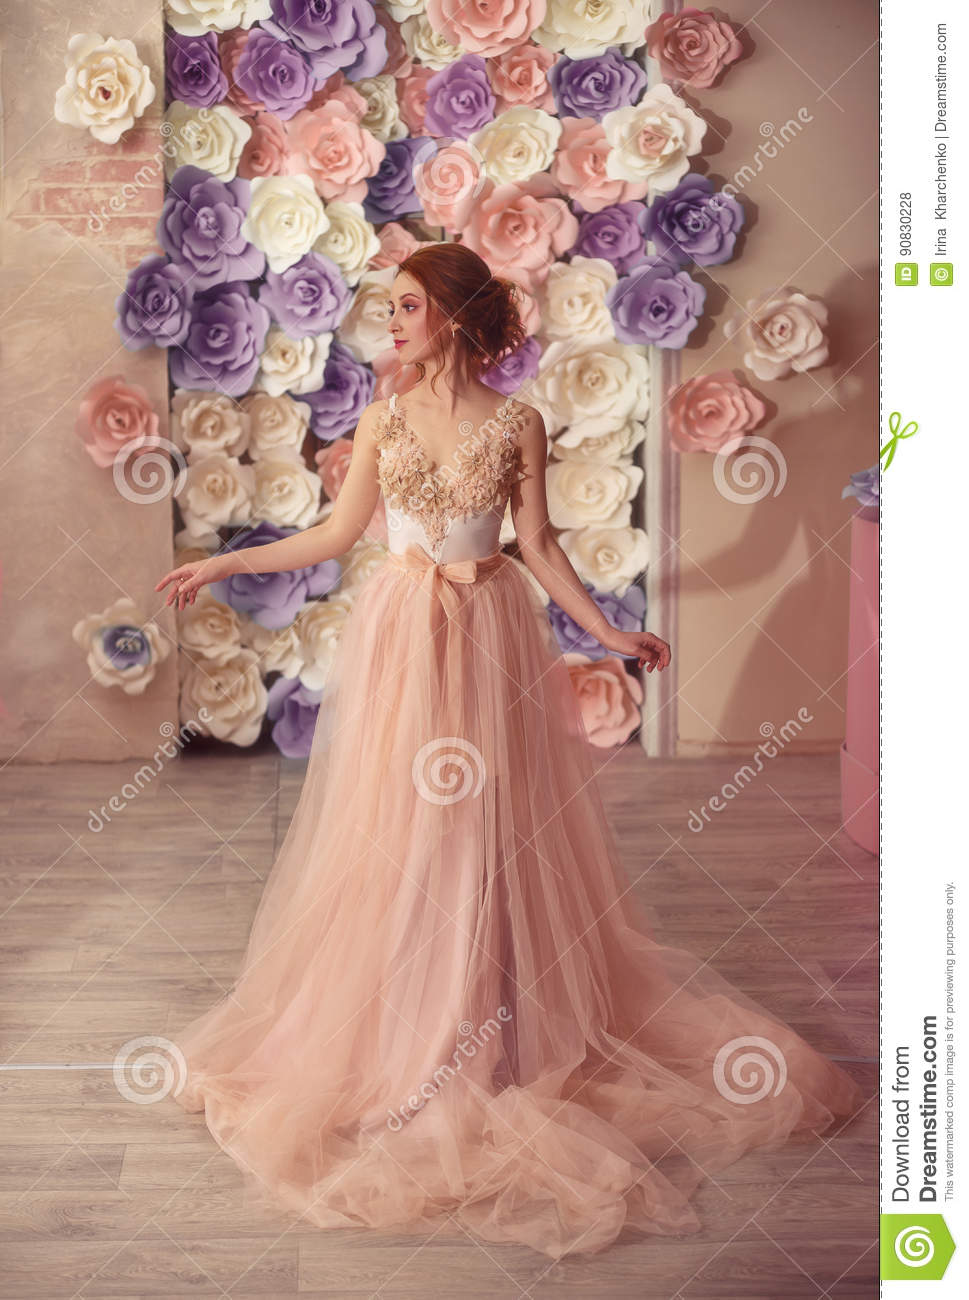 A young girl in a luxurious dress